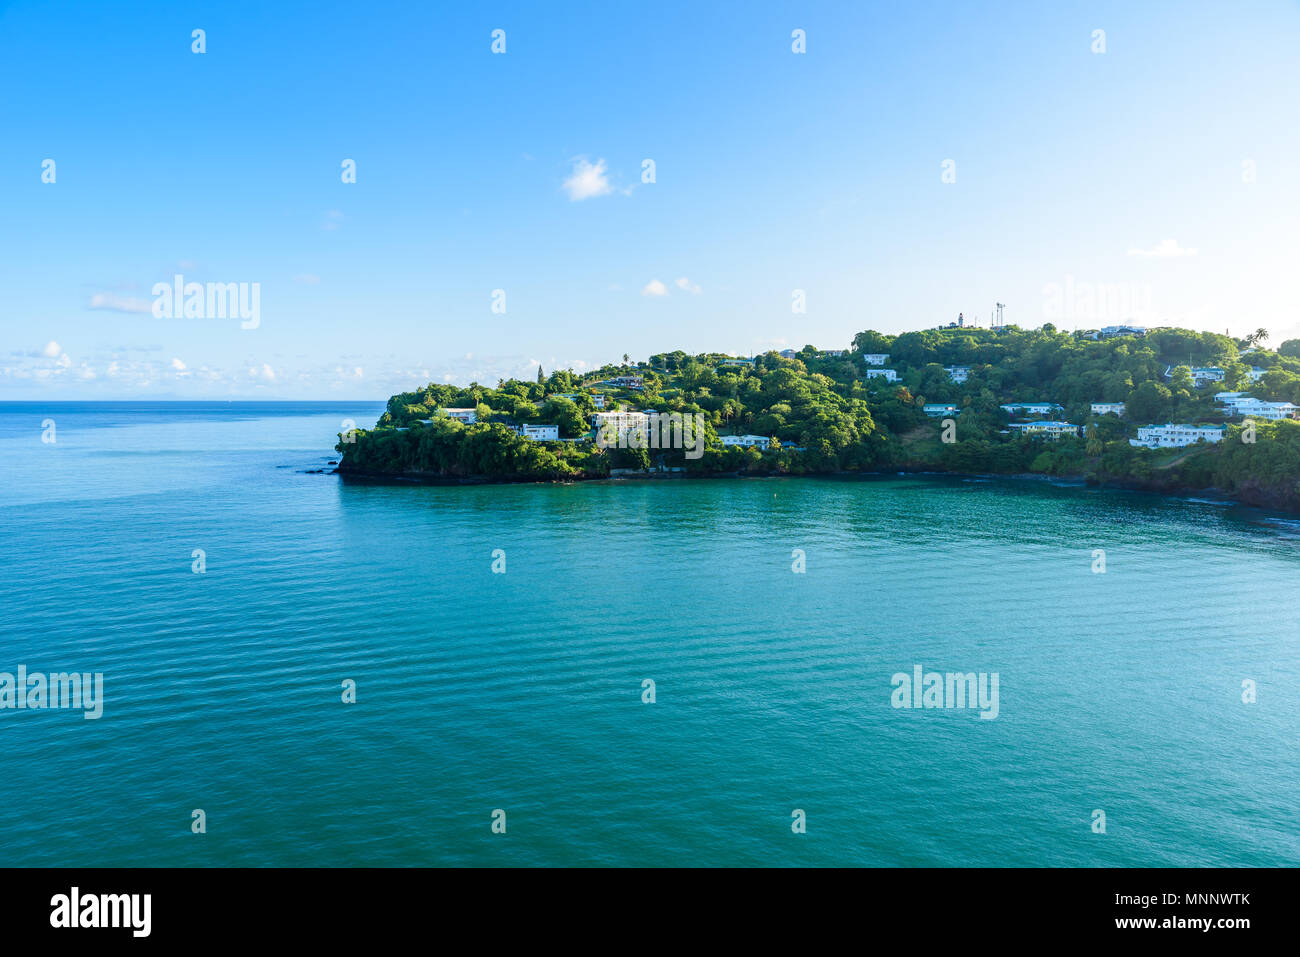 Tropical coast on the Caribbean island of St. Lucia. It is a paradise destination with a white sand beach and turquoiuse sea. - Stock Image